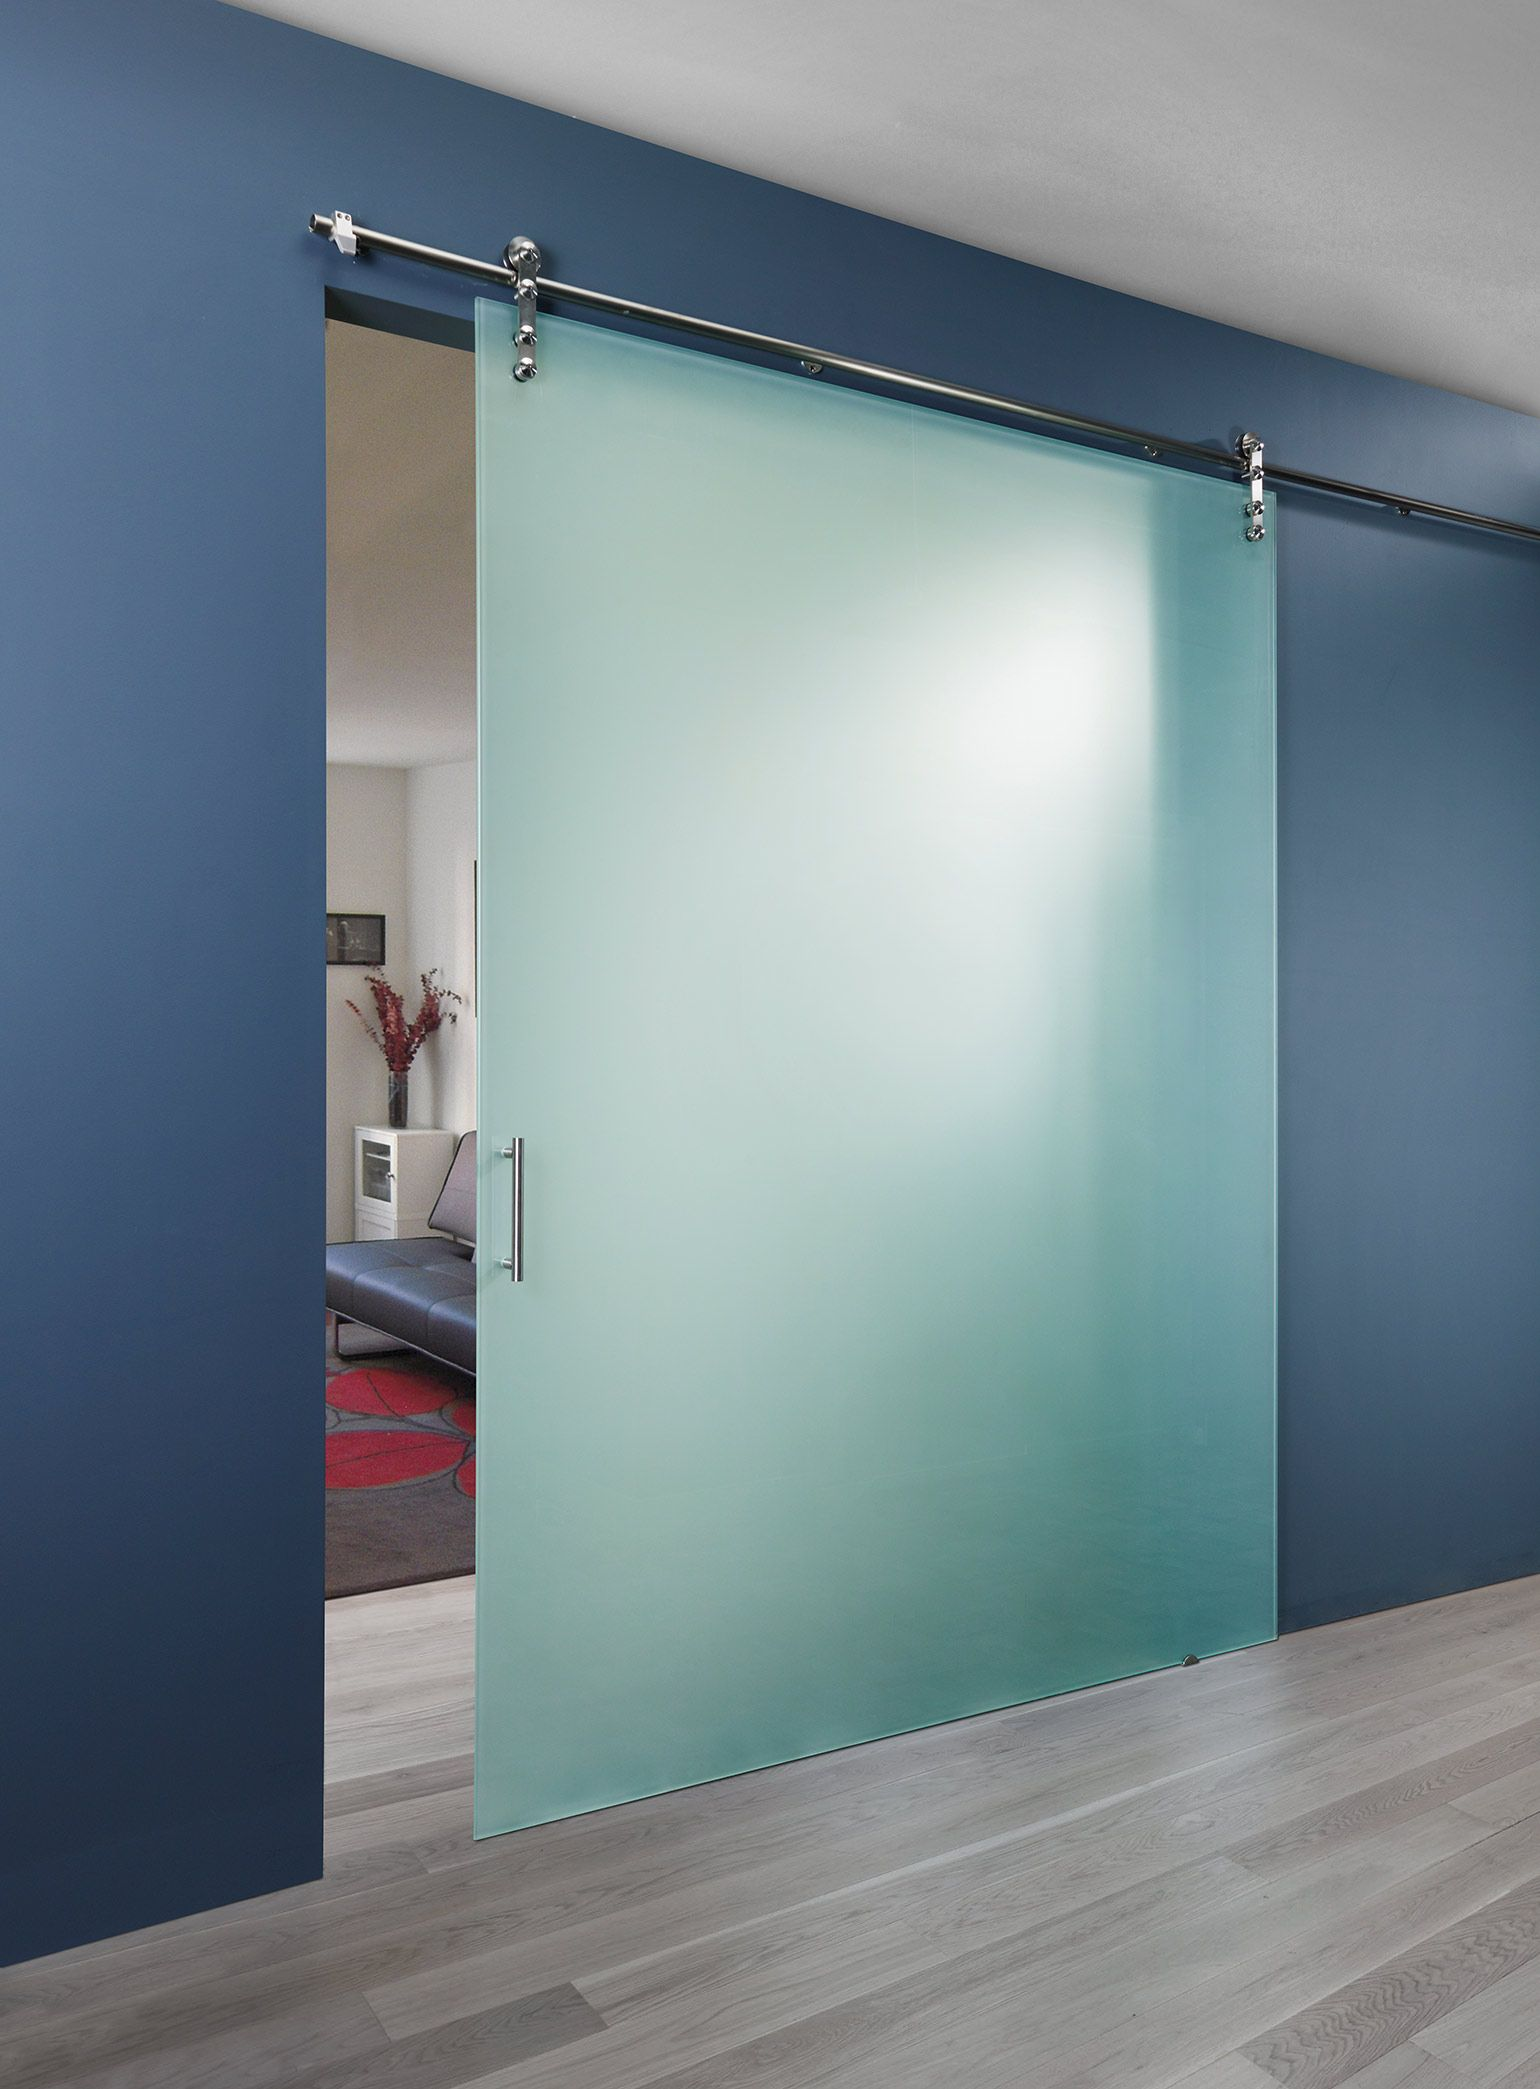 Commercial Interior Sliding Glass Doors our sister company spaceplus provides stunning interior glass